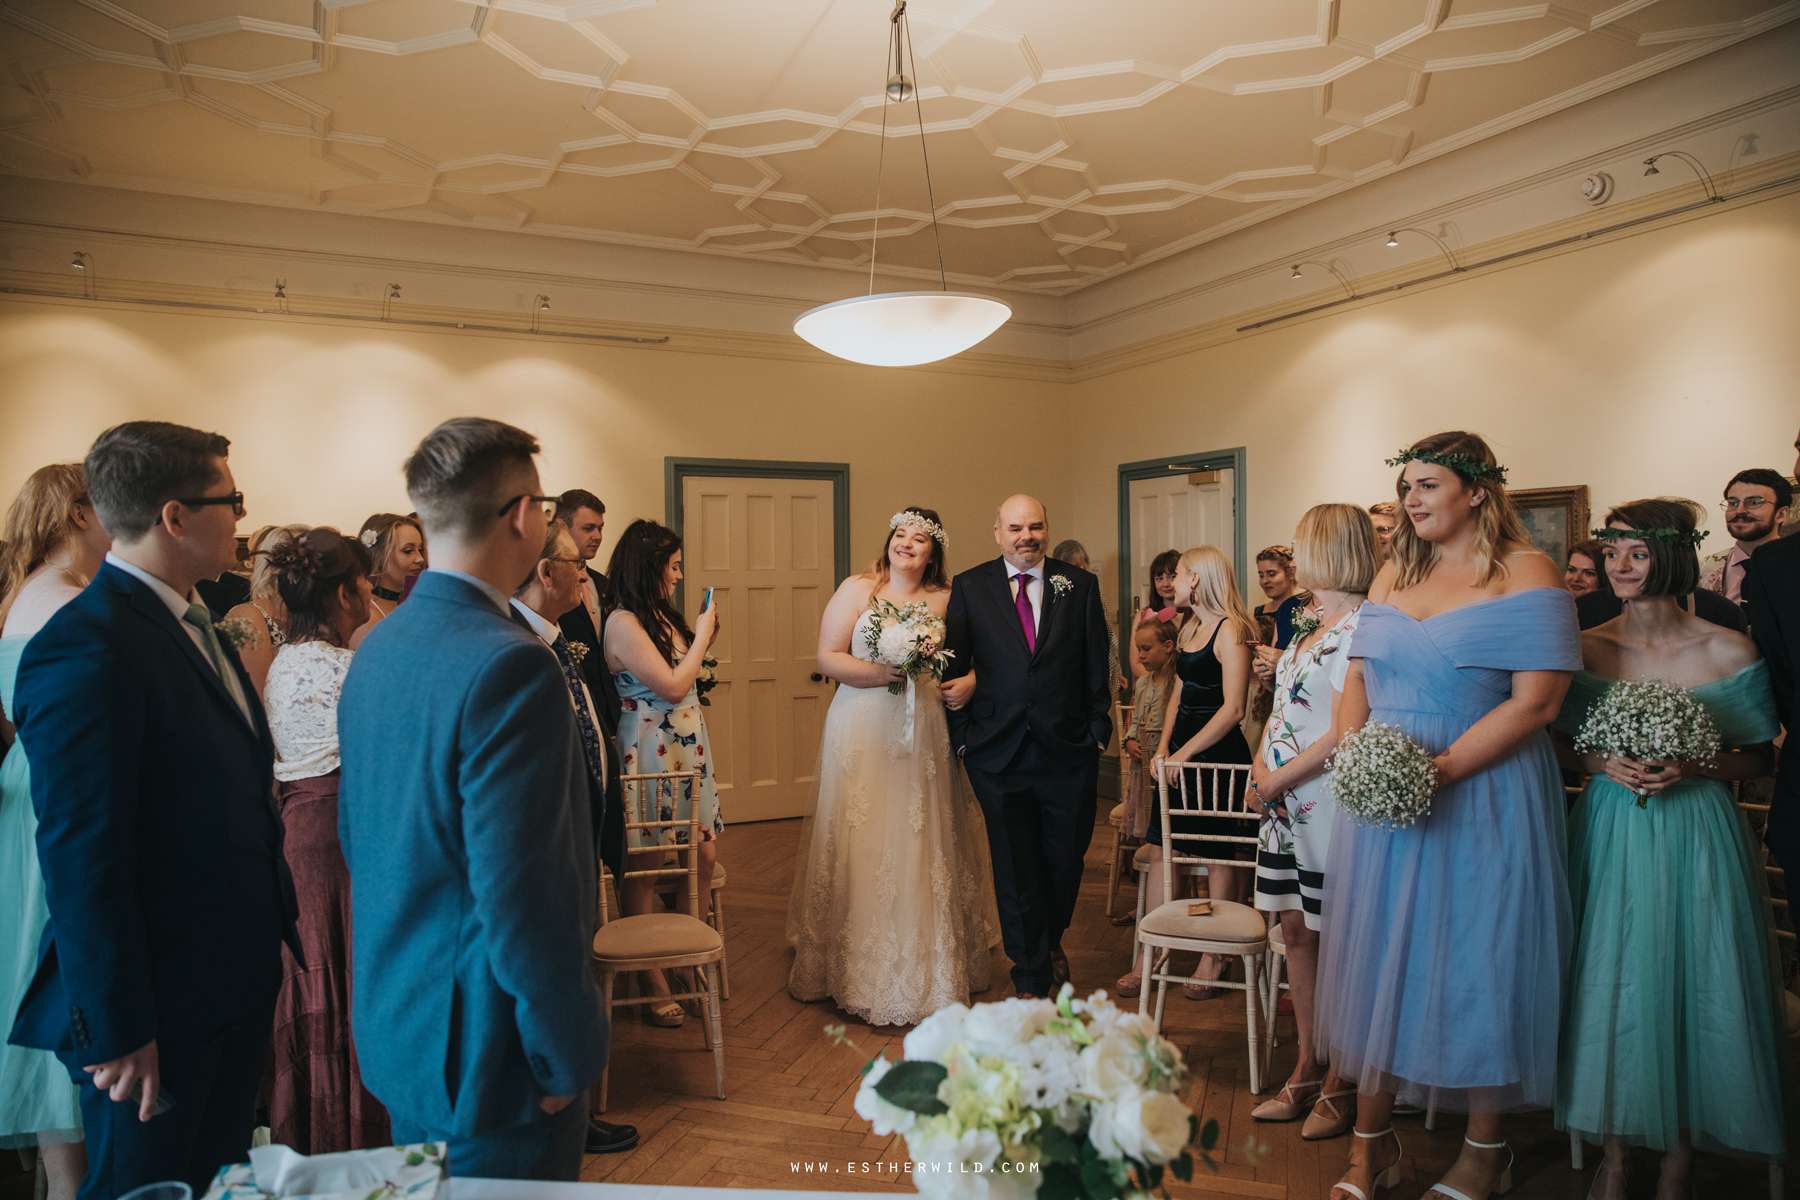 Norwich_Castle_Arcade_Grosvenor_Chip_Birdcage_Cathedral_Cloisters_Refectory_Wedding_Photography_Esther_Wild_Photographer_Norfolk_Kings_Lynn_3R8A0871.jpg